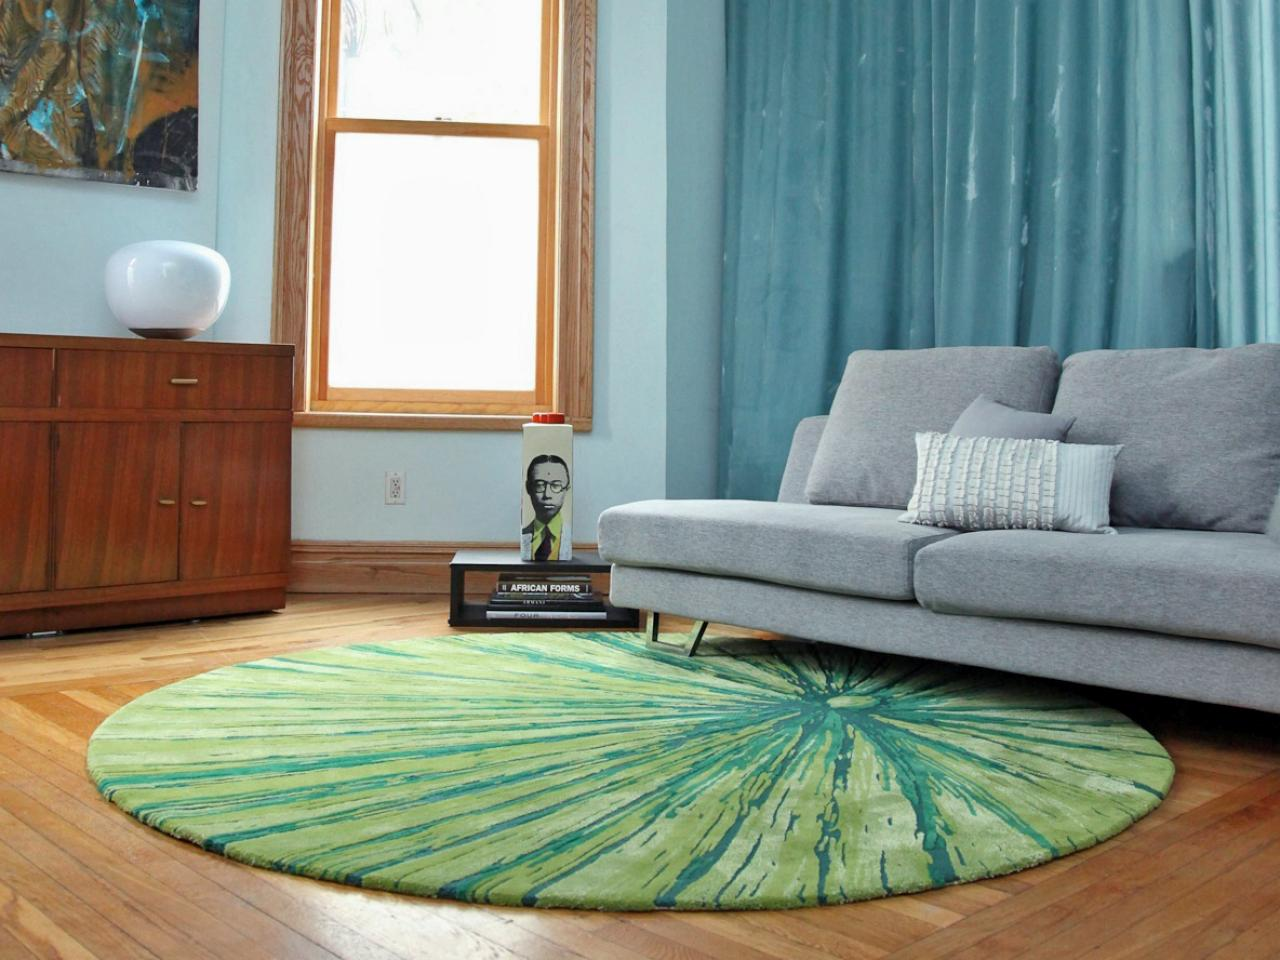 How Easy Is It To Pick and Install and Area Rug In Your Home